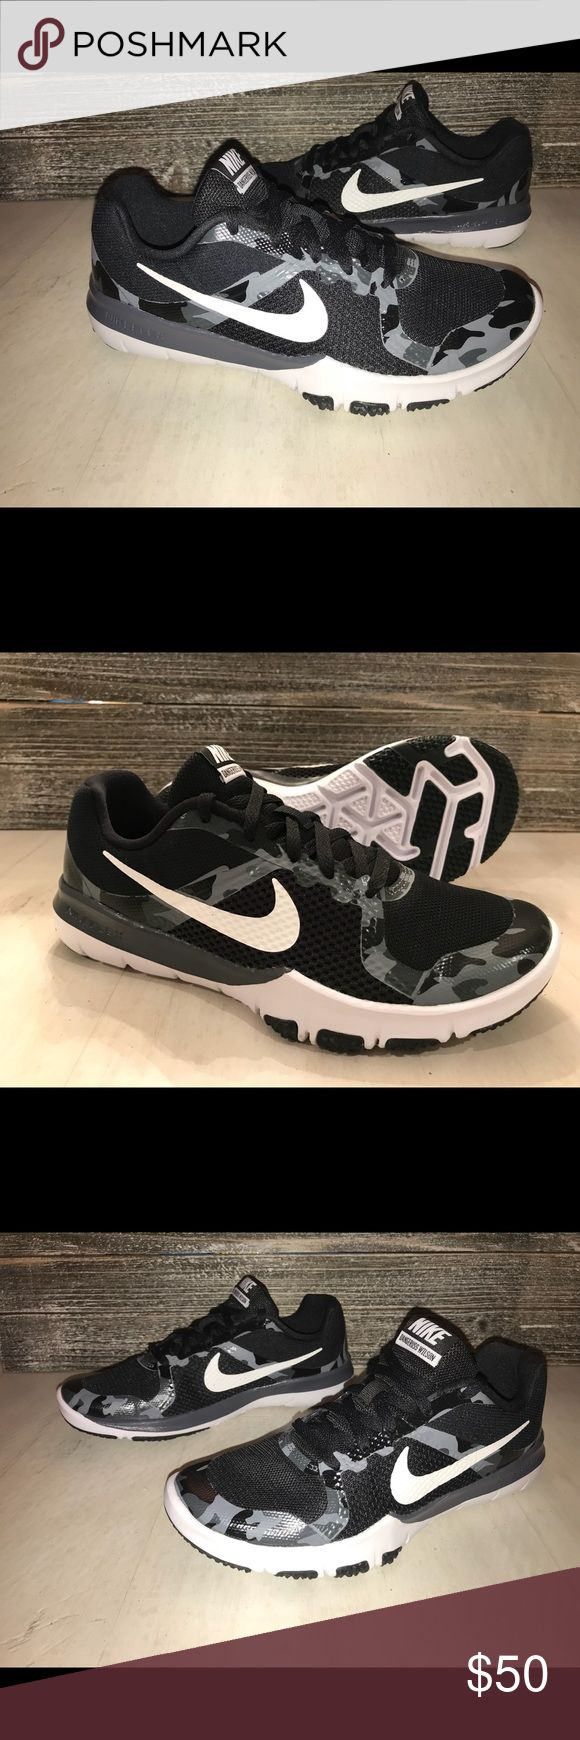 Best 25 shoe size conversion ideas on pinterest shoe chart womens international shoe size conversion chart see more nwt nike flex control training shoes new in box nike nvjuhfo Image collections